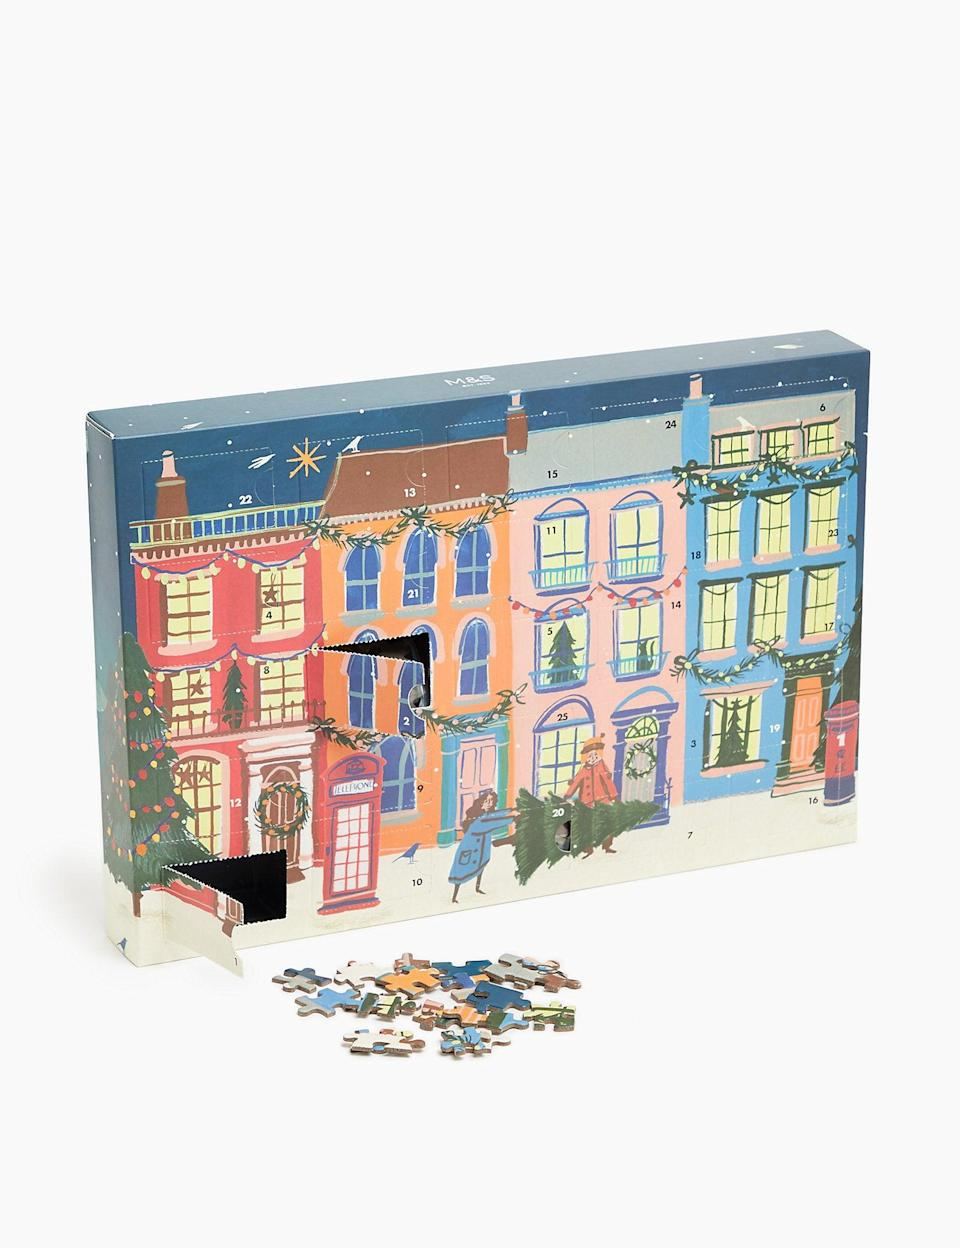 "<h3><a href=""https://www.marksandspencer.com/us/christmas-jewellery-advent-calendar/p/P60164365.html"" rel=""nofollow noopener"" target=""_blank"" data-ylk=""slk:Marks & Spencer Advent Jigsaw"" class=""link rapid-noclick-resp"">Marks & Spencer Advent Jigsaw</a></h3><br>This charming jigsaw puzzle advent calendar is the definition of delayed gratification; however, we've got a feeling that there's no better feeling than <em>finally</em> completing the wintery street scene on Christmas Day.<br><br><strong>Marks & Spencer</strong> Advent Jigsaw, $, available at <a href=""https://go.skimresources.com/?id=30283X879131&url=https%3A%2F%2Fwww.marksandspencer.com%2Fus%2Fadvent-jigsaw%2Fp%2F000000000060281648.html"" rel=""nofollow noopener"" target=""_blank"" data-ylk=""slk:Marks & Spencer"" class=""link rapid-noclick-resp"">Marks & Spencer</a>"